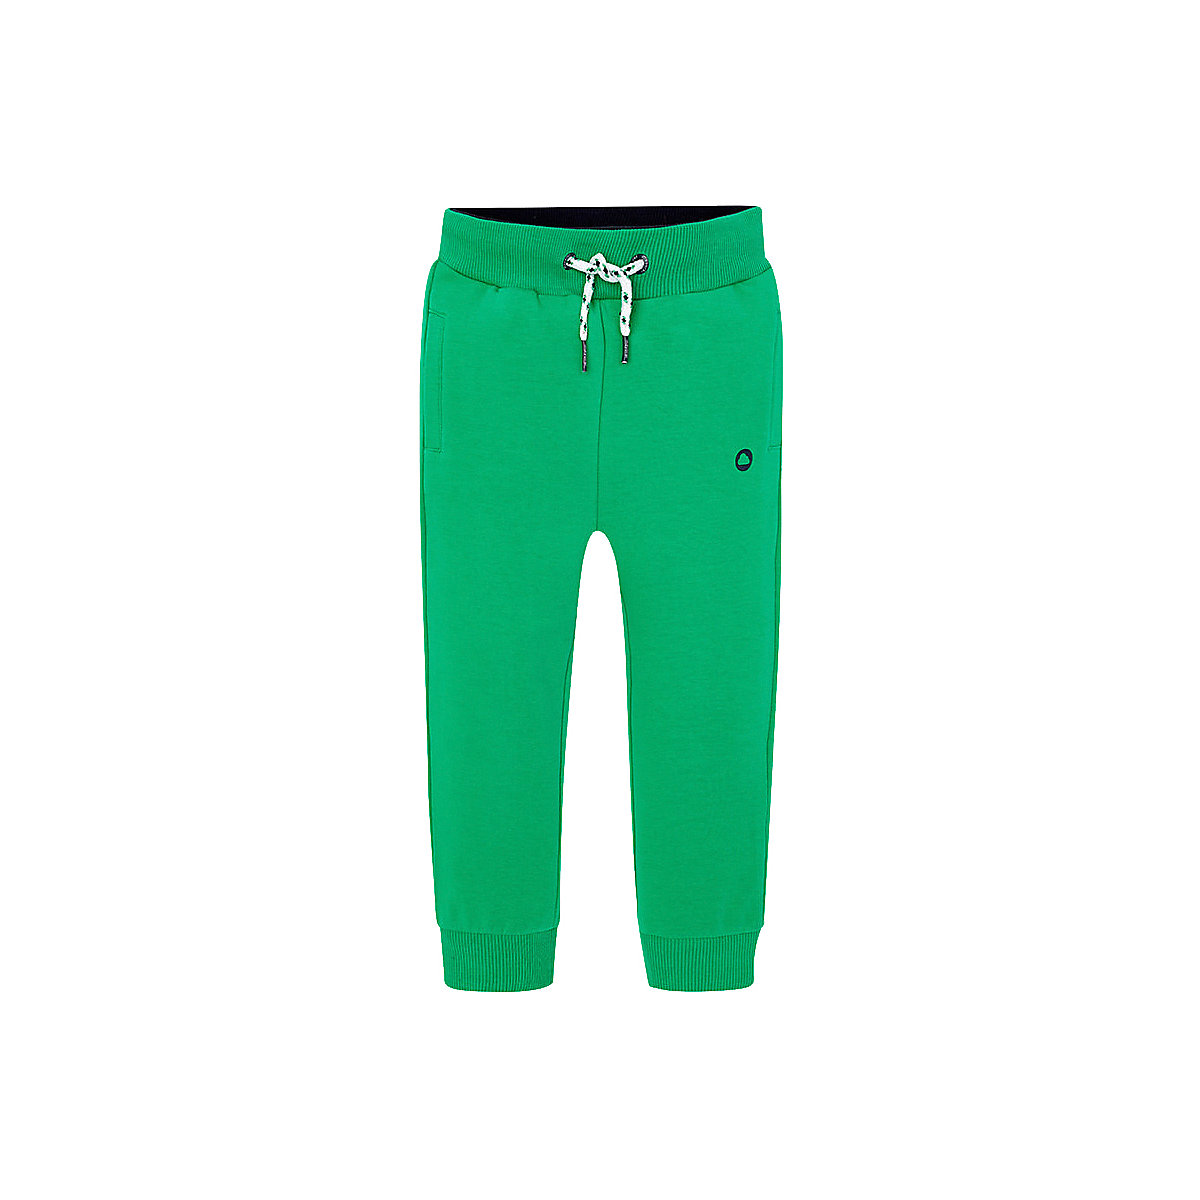 Mayoral Pants & Capris 10681496 trousers for boys boy Children clothes Kids clothing summer t shirt tops pants trousers 2017 new arrival boys clothes hot sale baby boy clothing set kid clothes outfits sets for boy